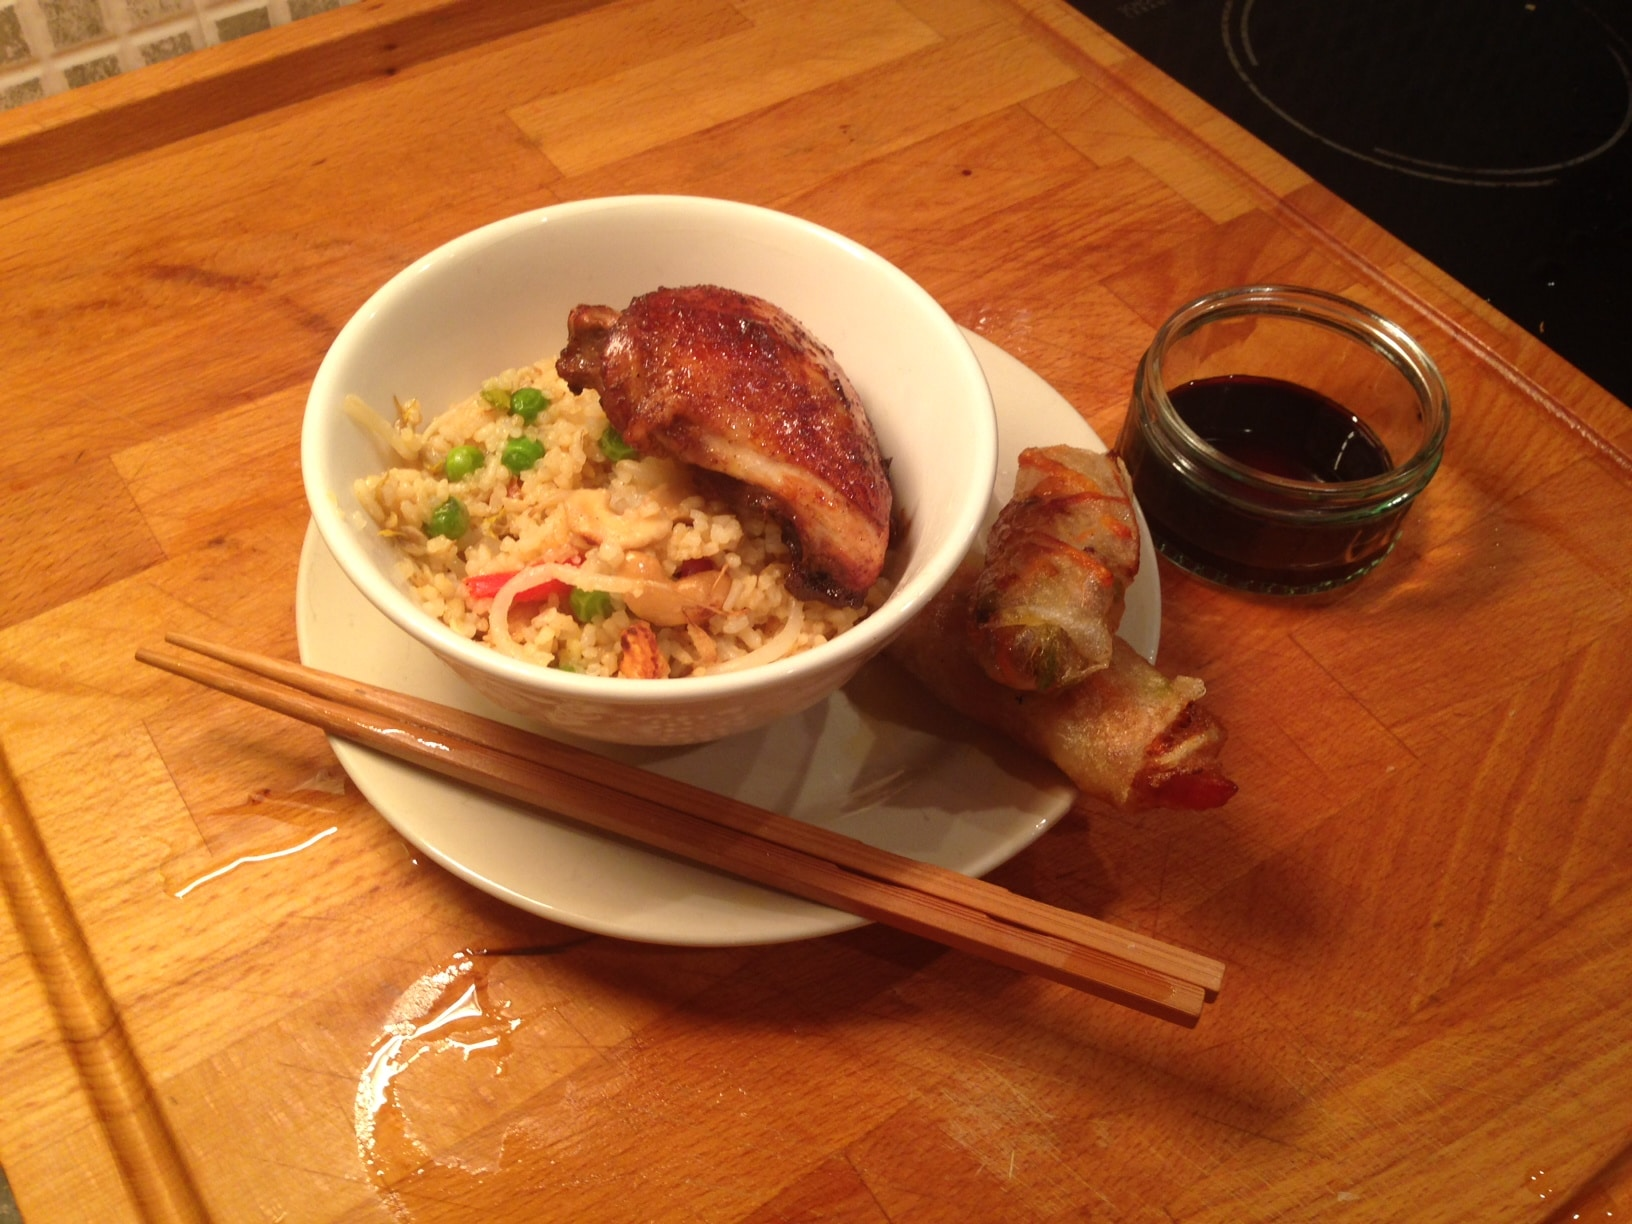 Fakeaway: Chinese Roasted Chicken, Vegetable Fried Rice and Spring Rolls